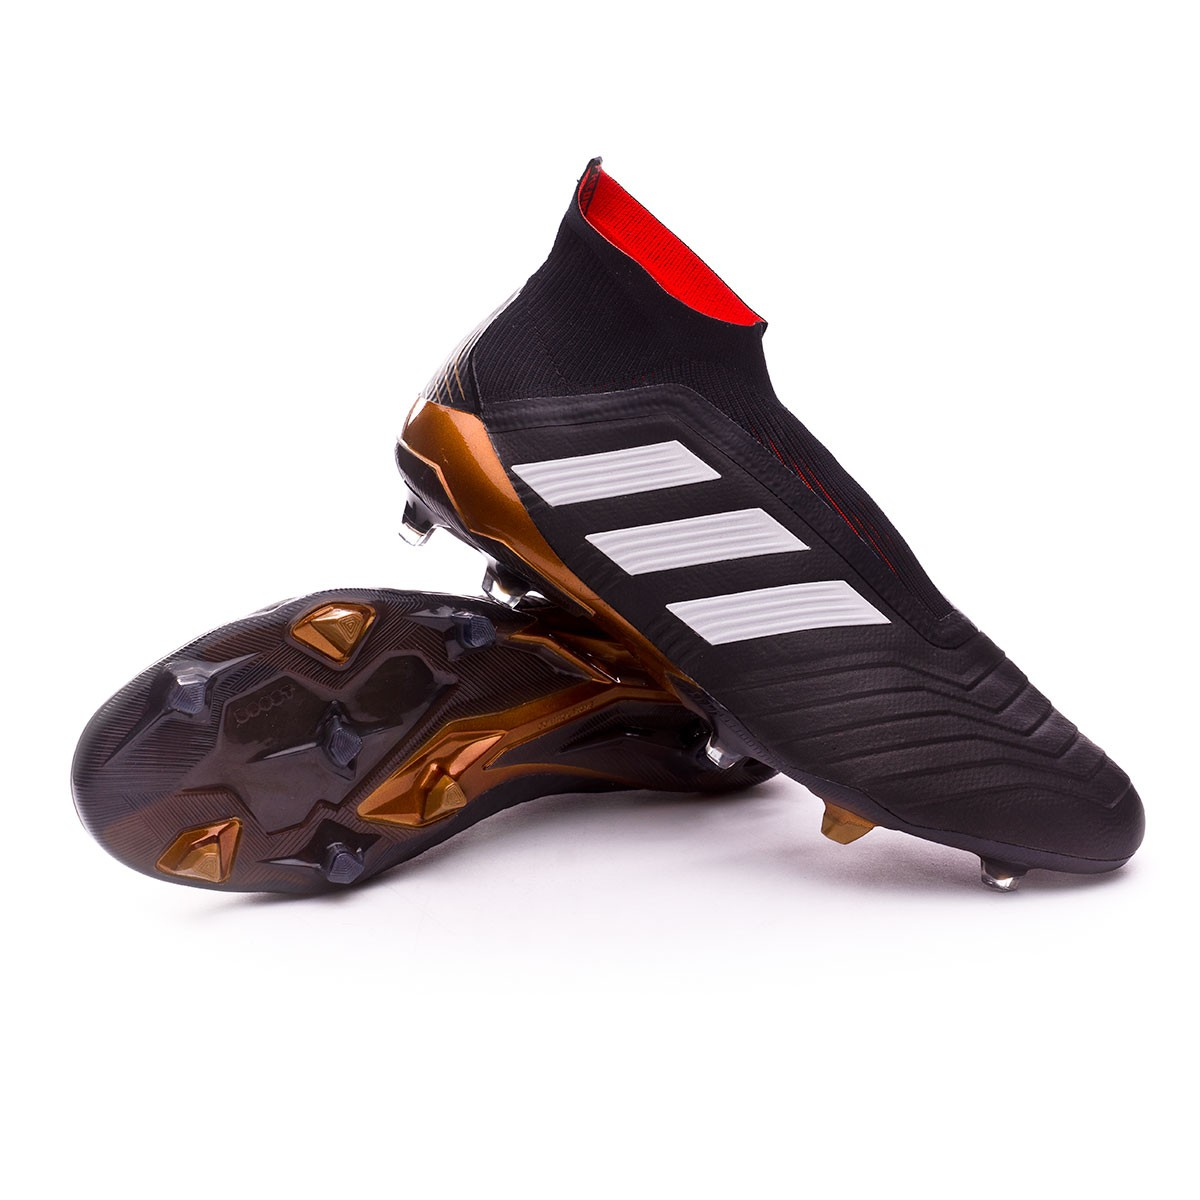 5c61e029e Football Boots adidas Predator 18+ FG Core black-White-Gold metallic-Solar  red - Football store Fútbol Emotion